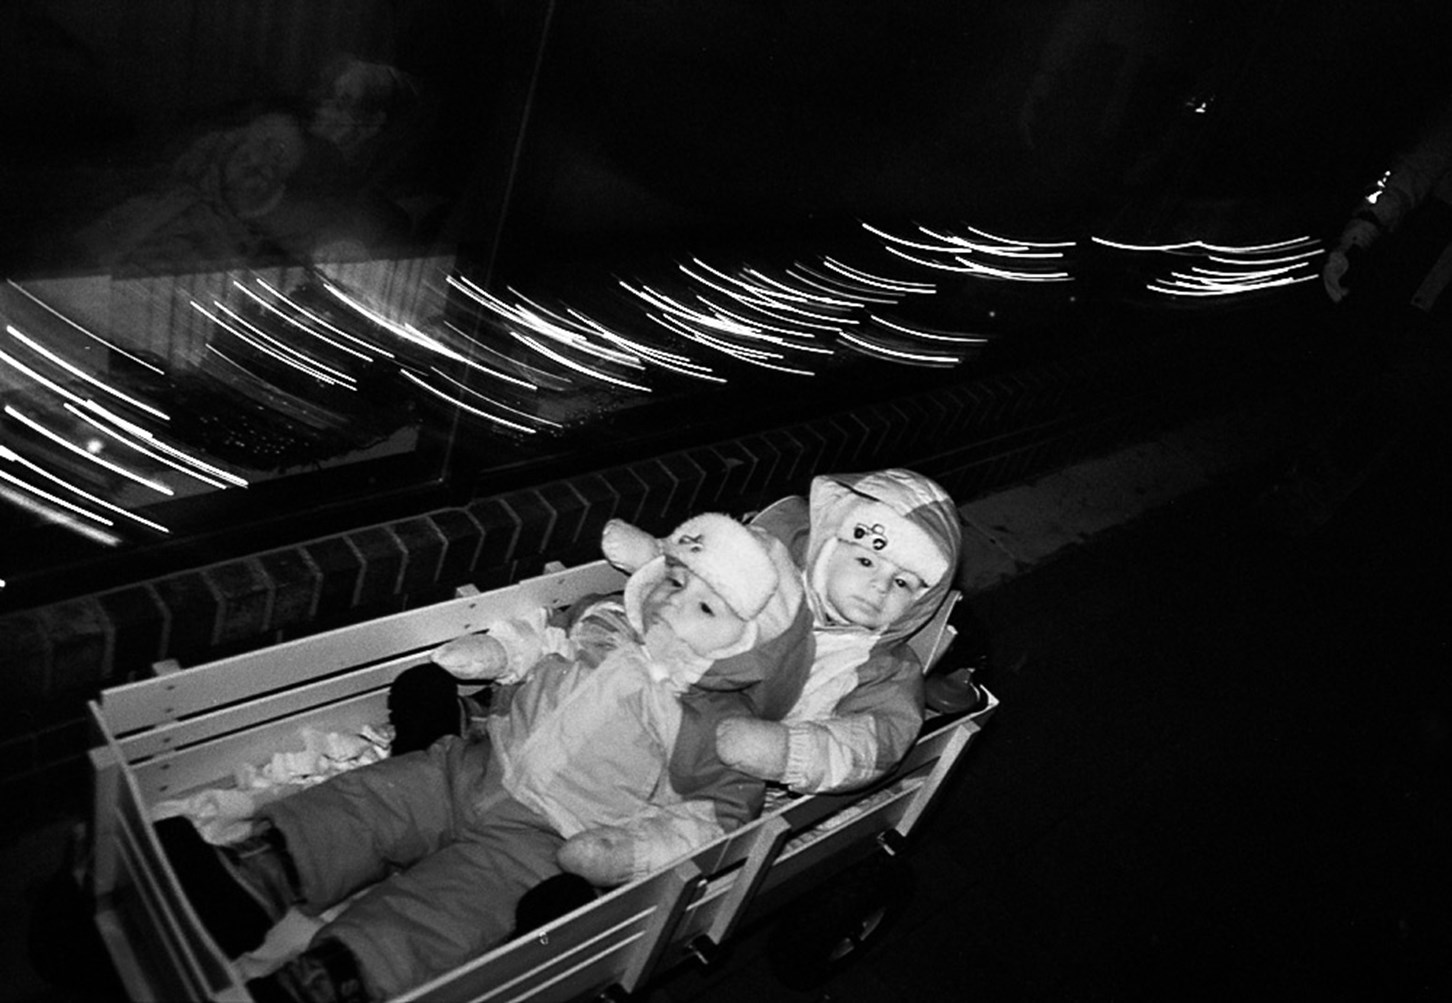 Two Kids in a Cart